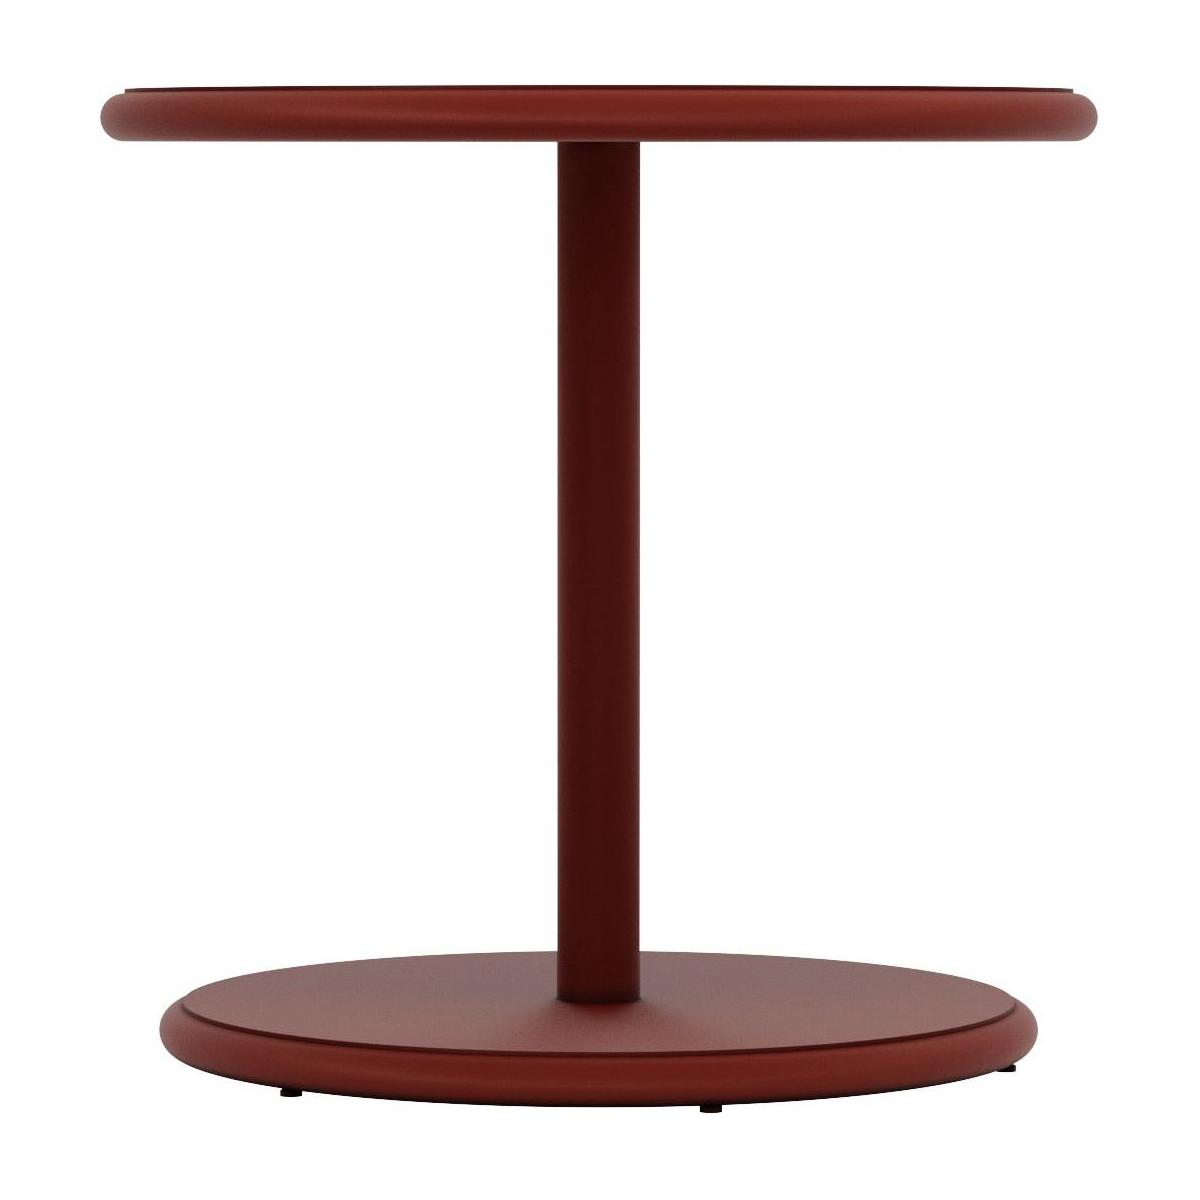 Table d'appoint ronde en aluminium - Rouge n°3